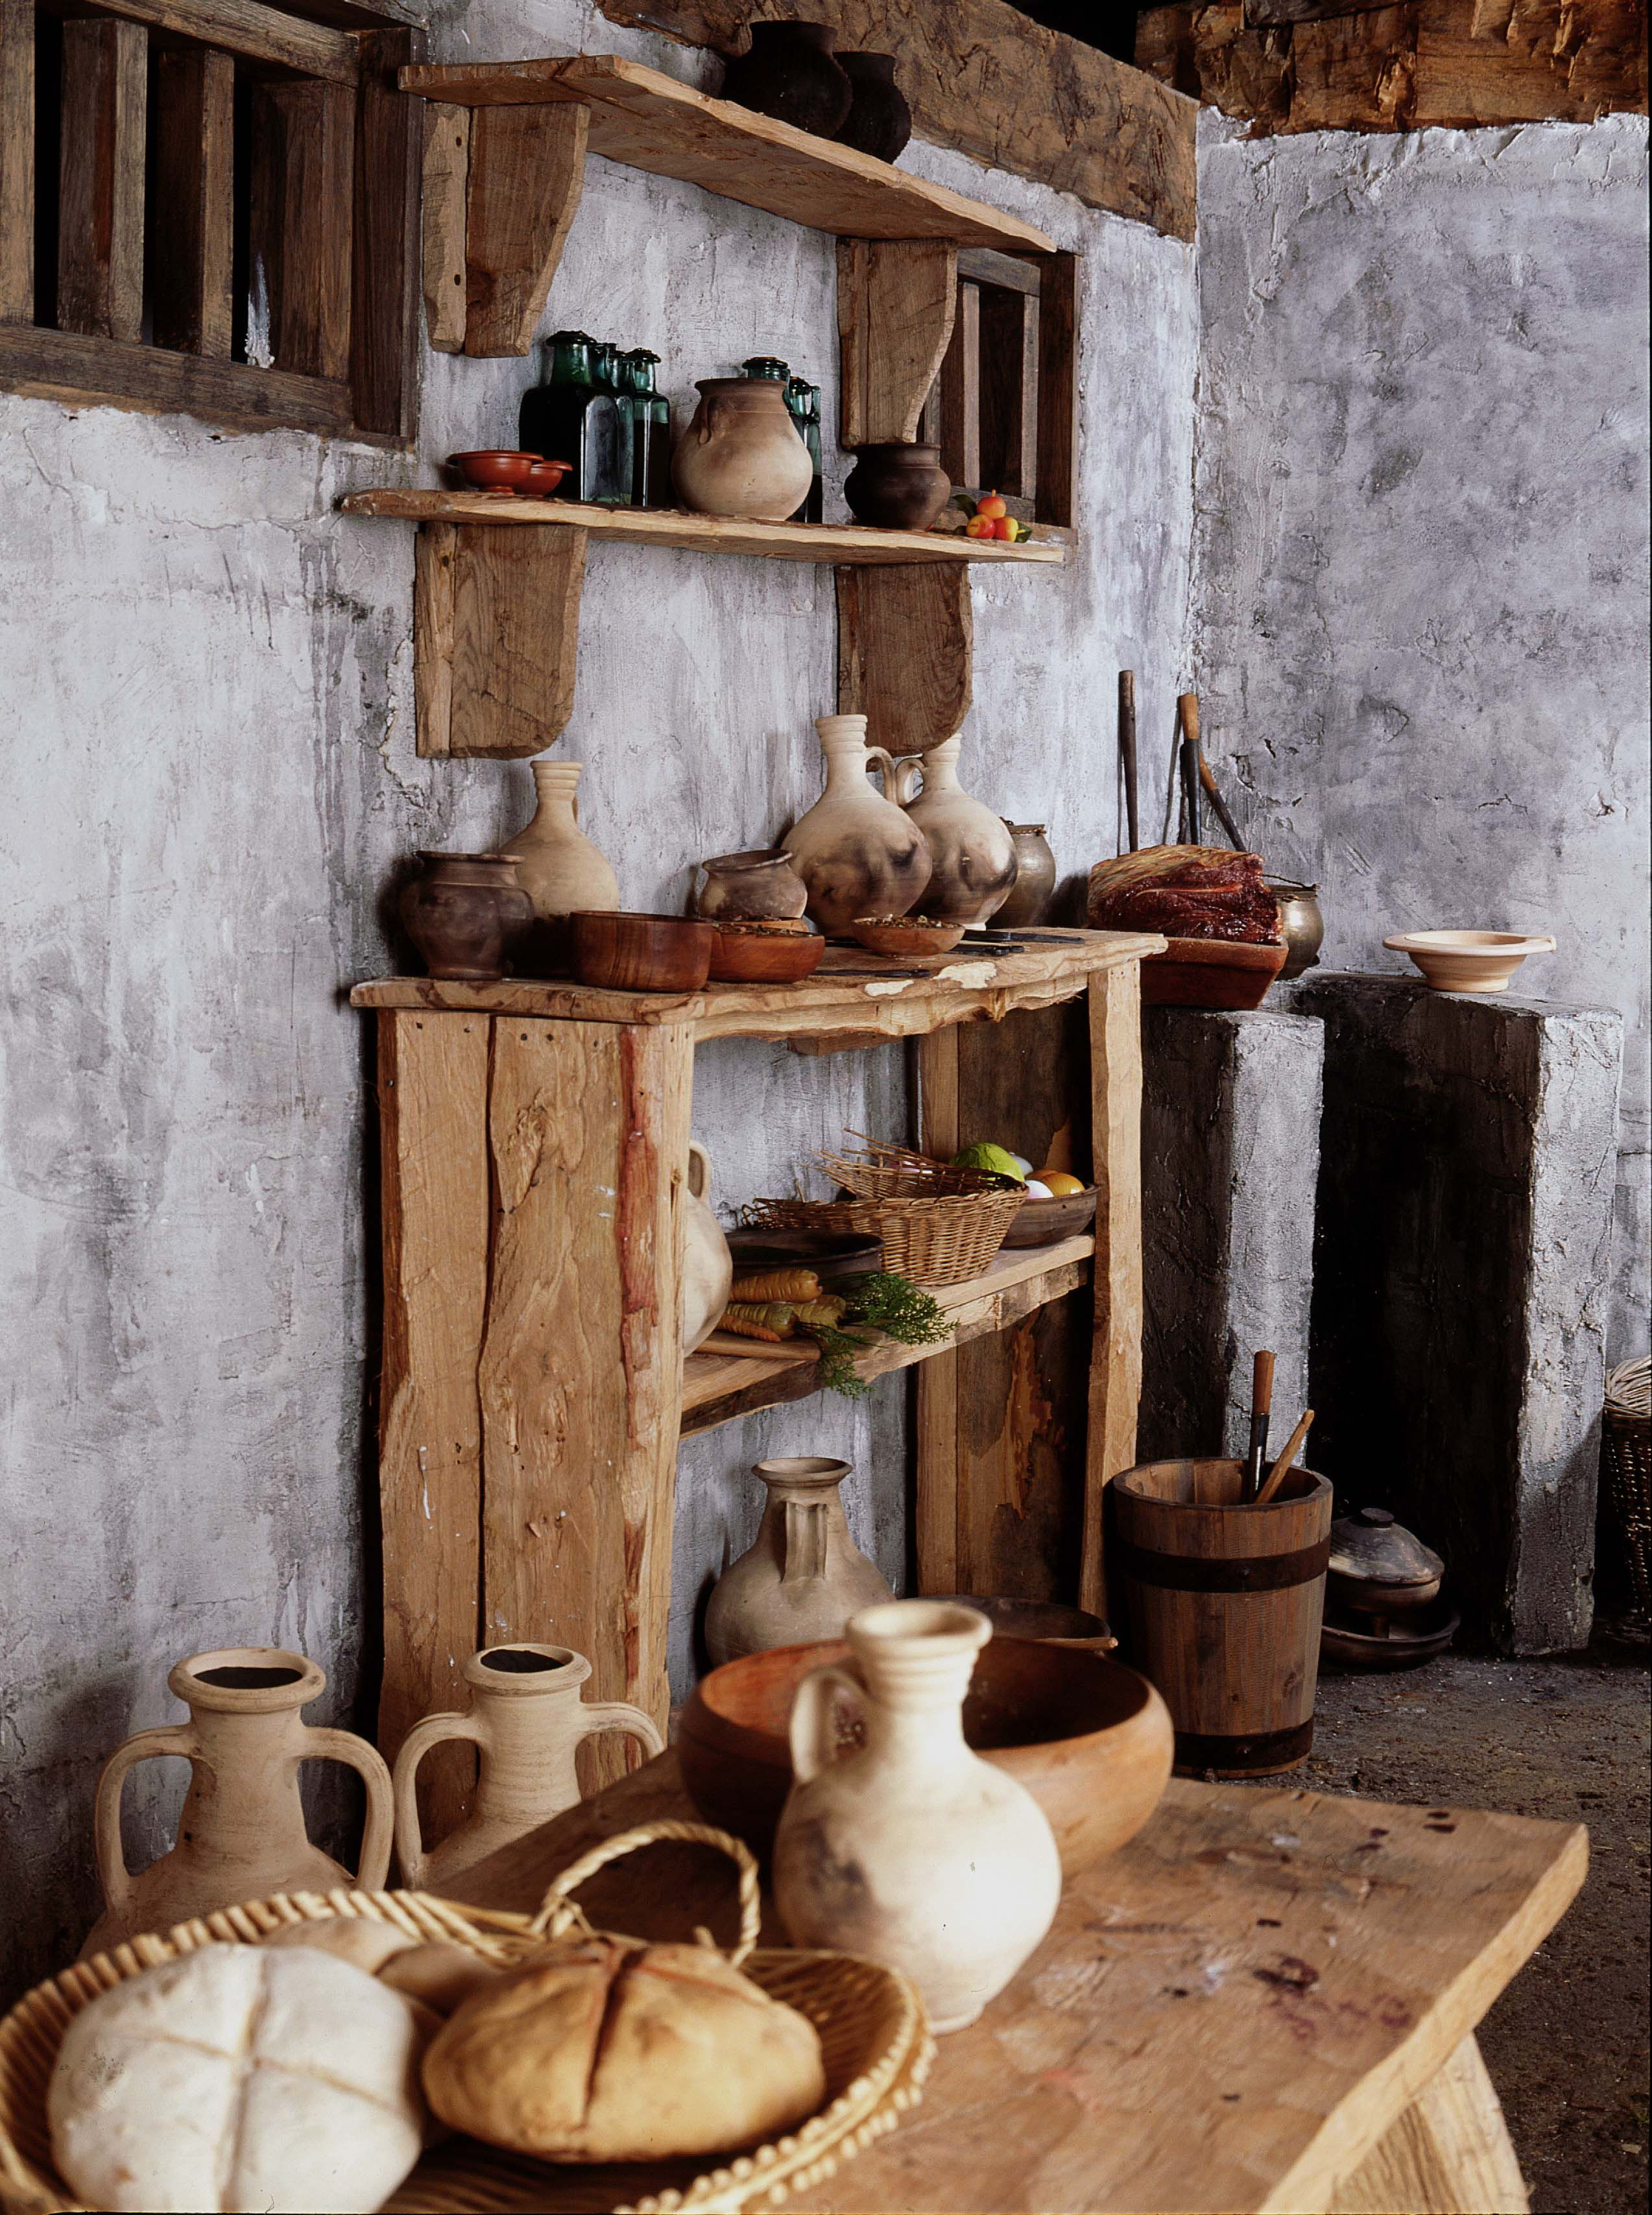 Küche Antikes Griechenland Roman Kitchen Reconstruction Based On Finds From 1 Poultry